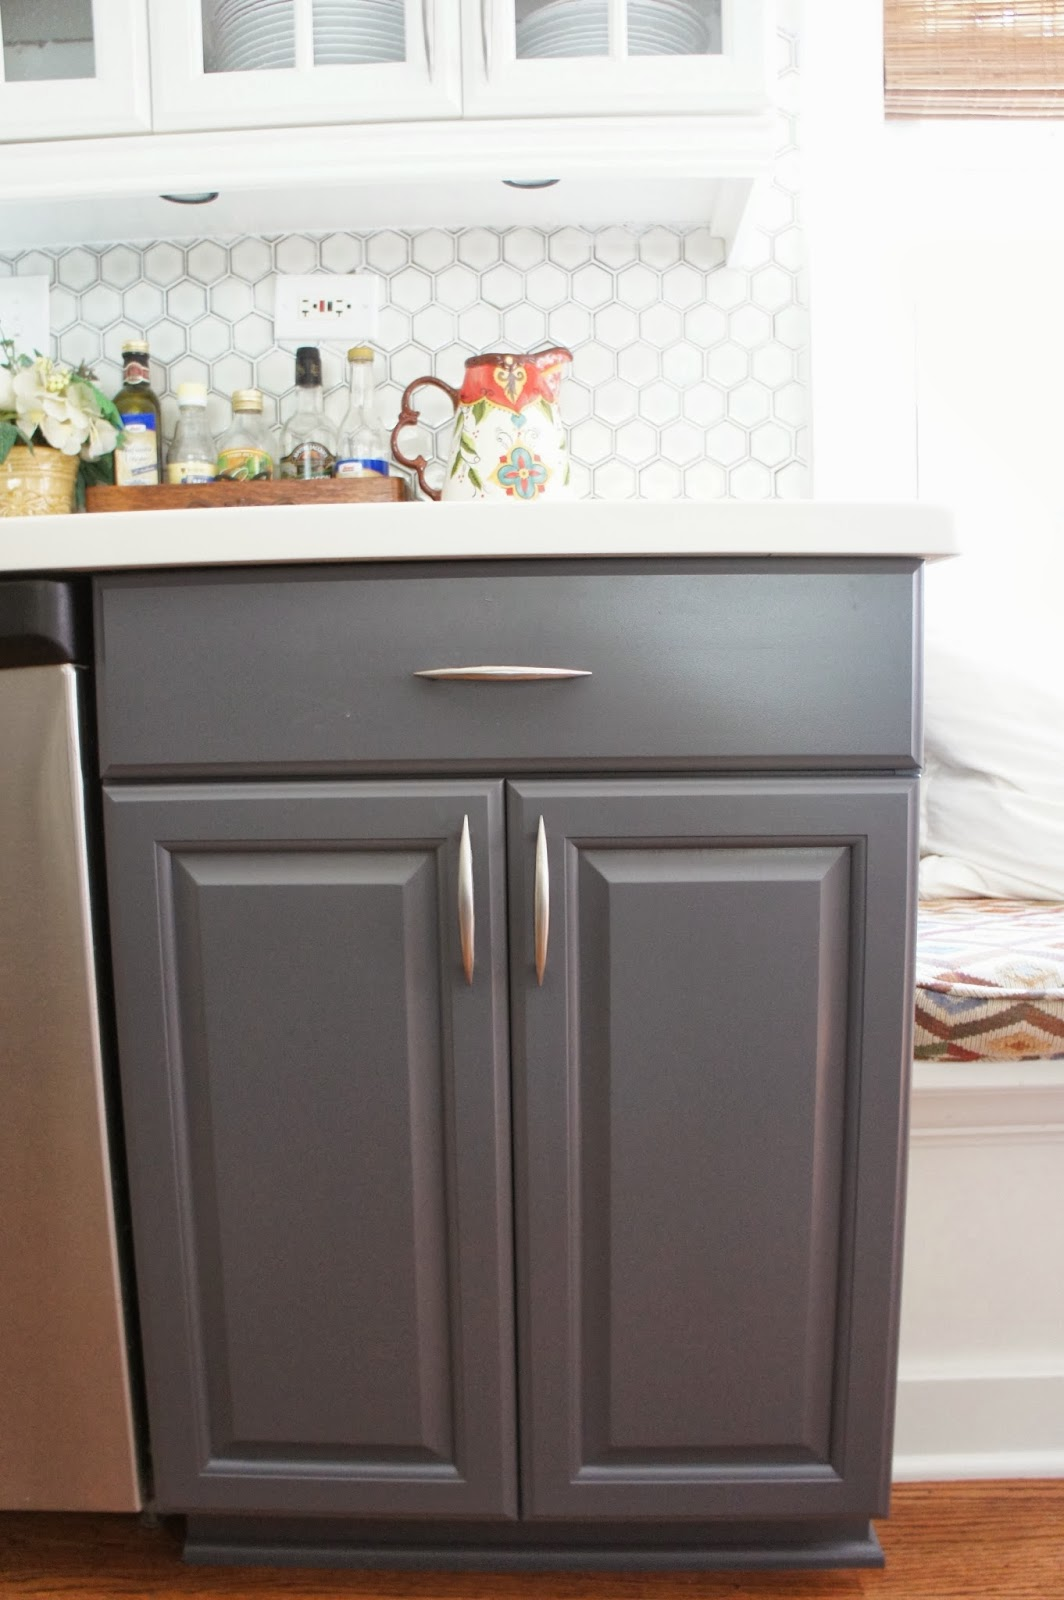 Elegant two tone gray and white painted kitchen cabinets LoveLee Homemaker featured on Remodelaholic